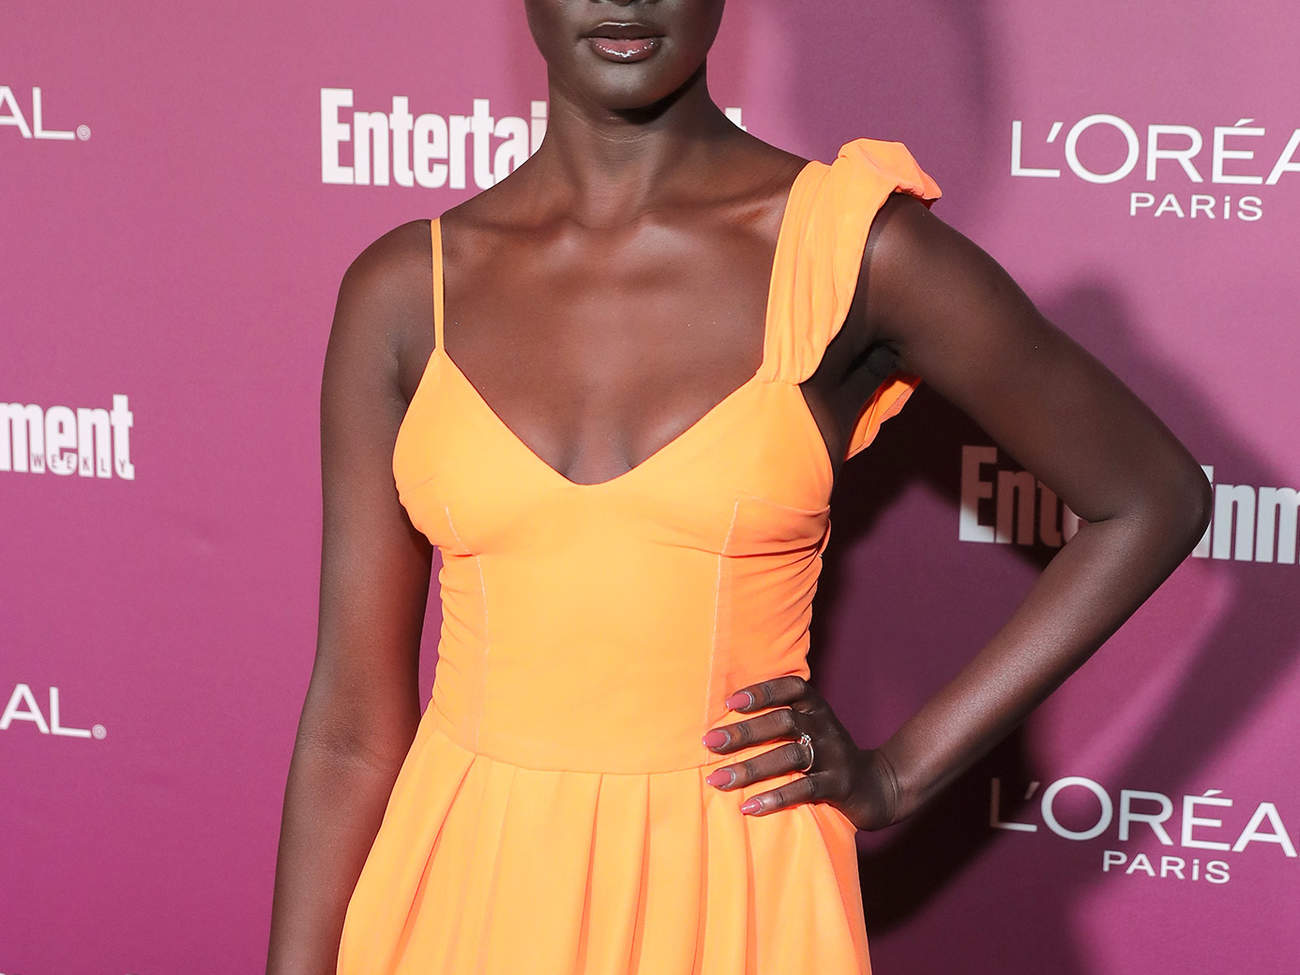 Senegalese Model Khoudia Diop Opens Up About the Pressure to Lighten Her Skin